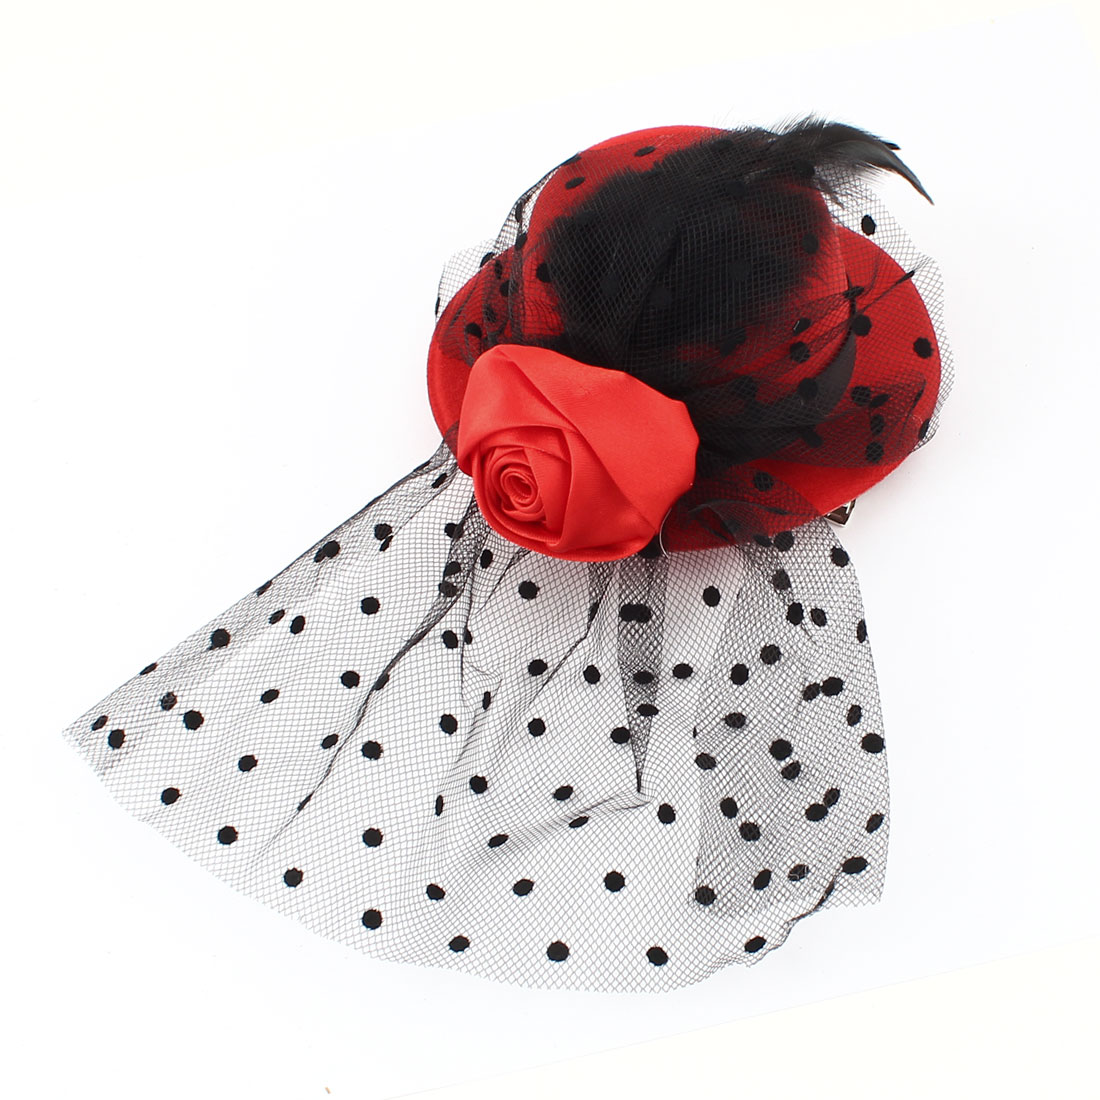 Ladies Mini Top Hat Black Feather Flower Detail Mesh Costume Hair Clip Red